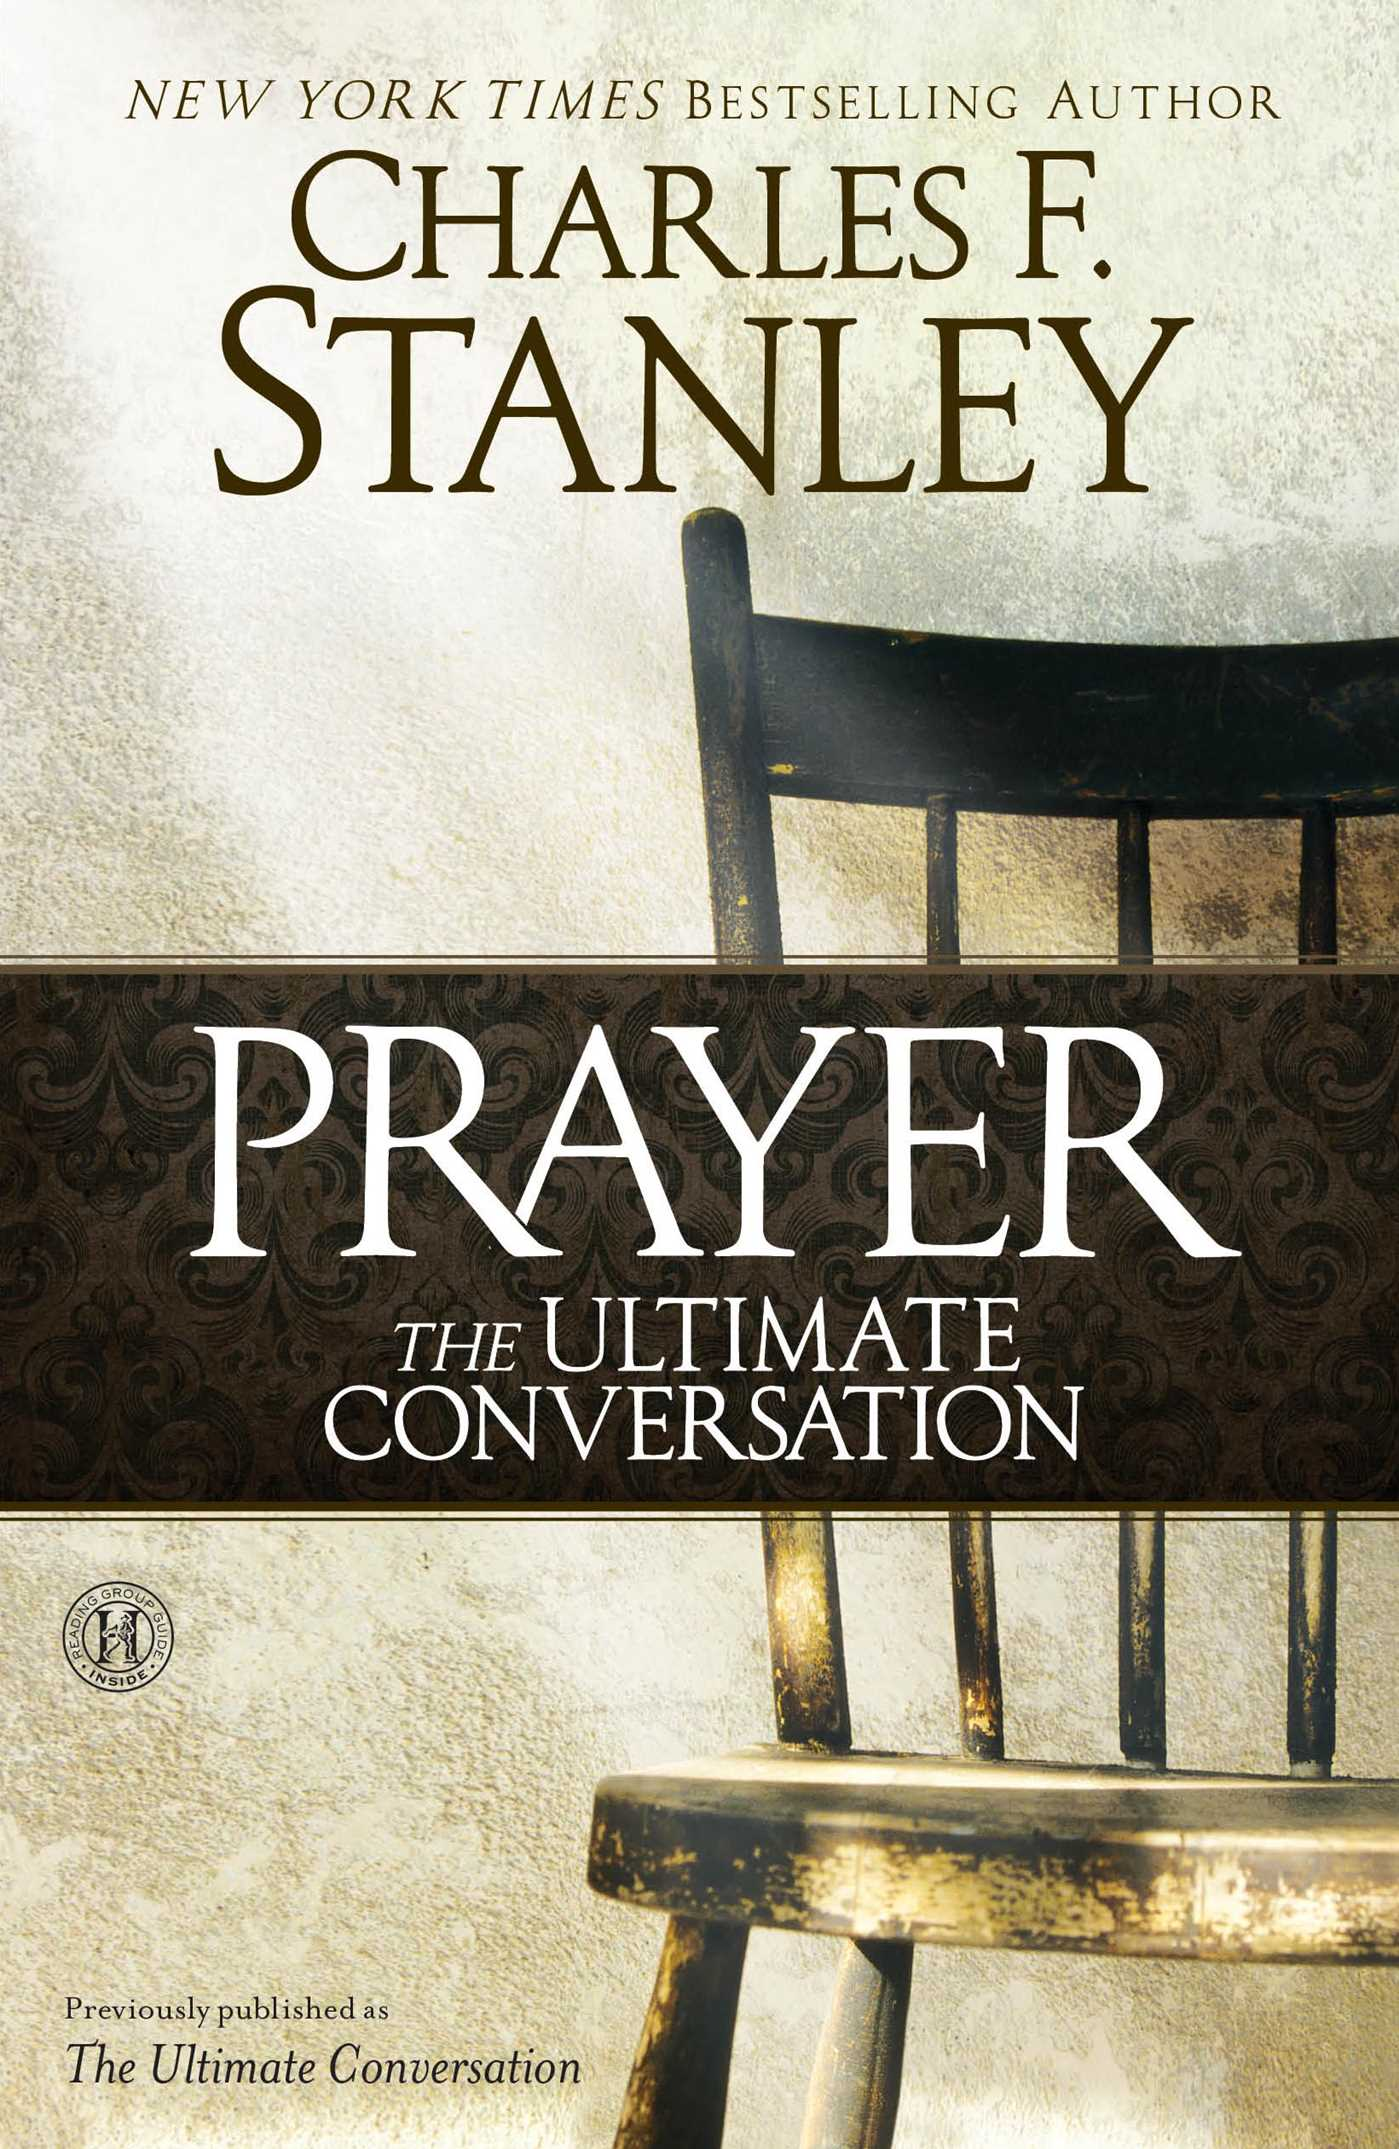 Prayer-the-ultimate-conversation-9781451628852_hr